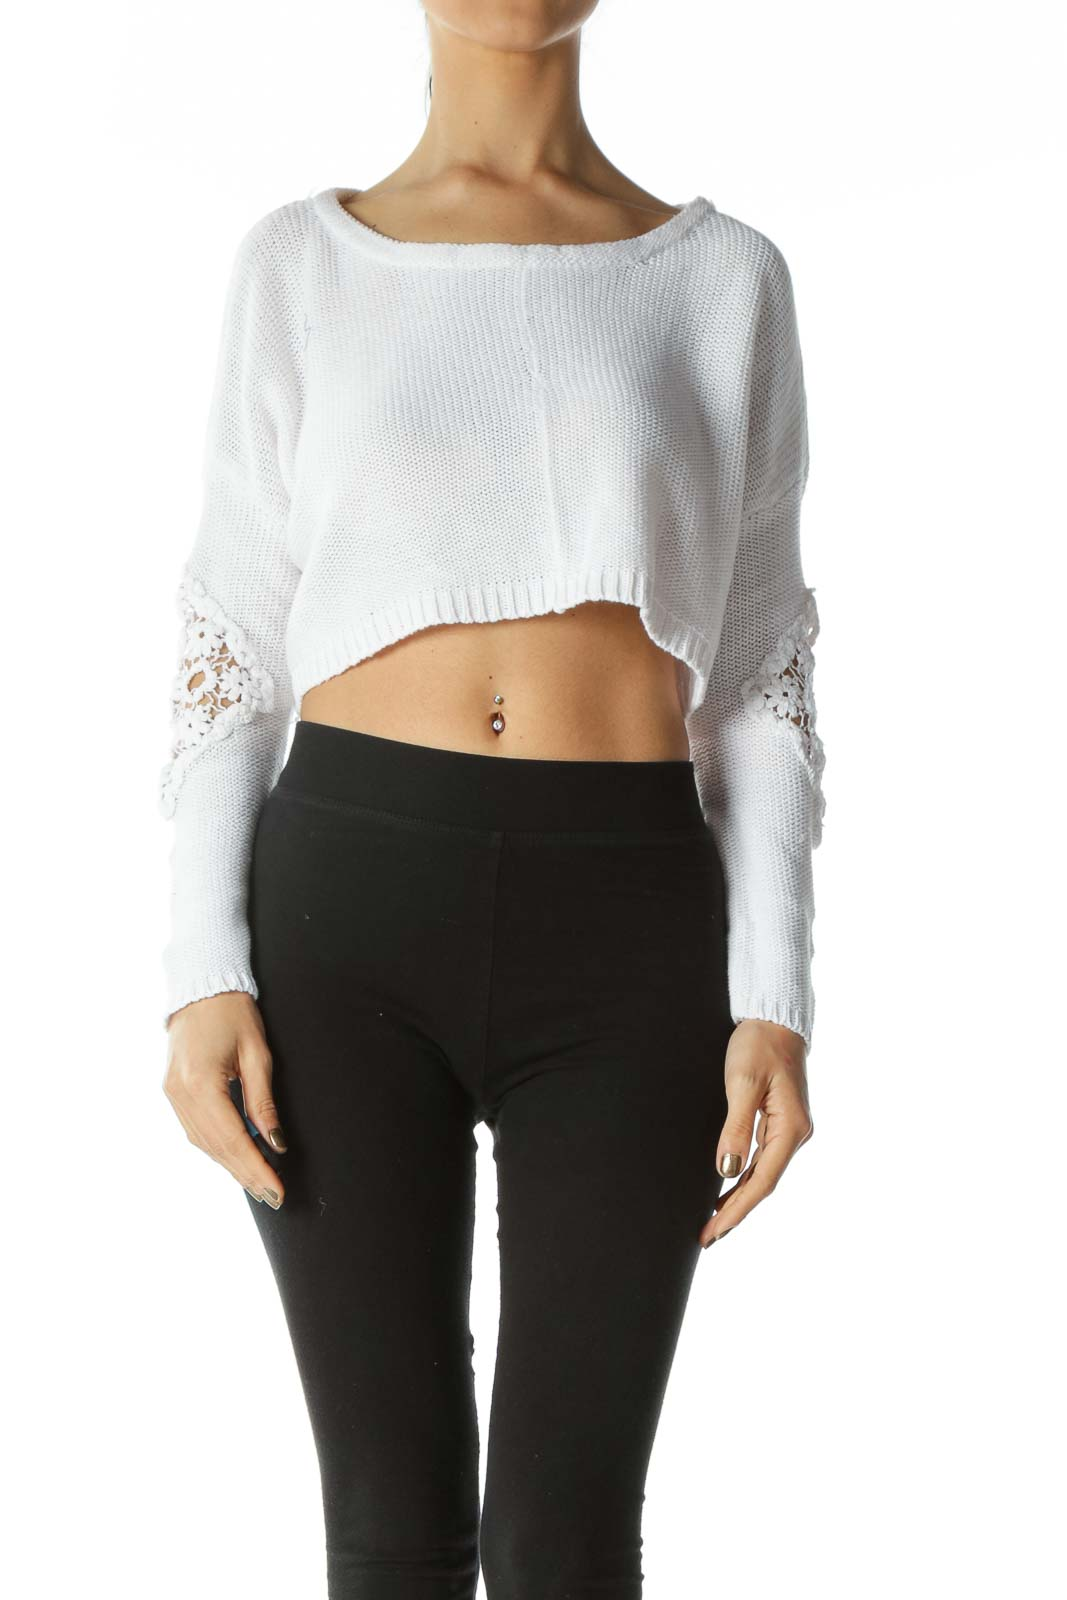 White Crocheted Long-Sleeve Crop-Top With Floral Lace